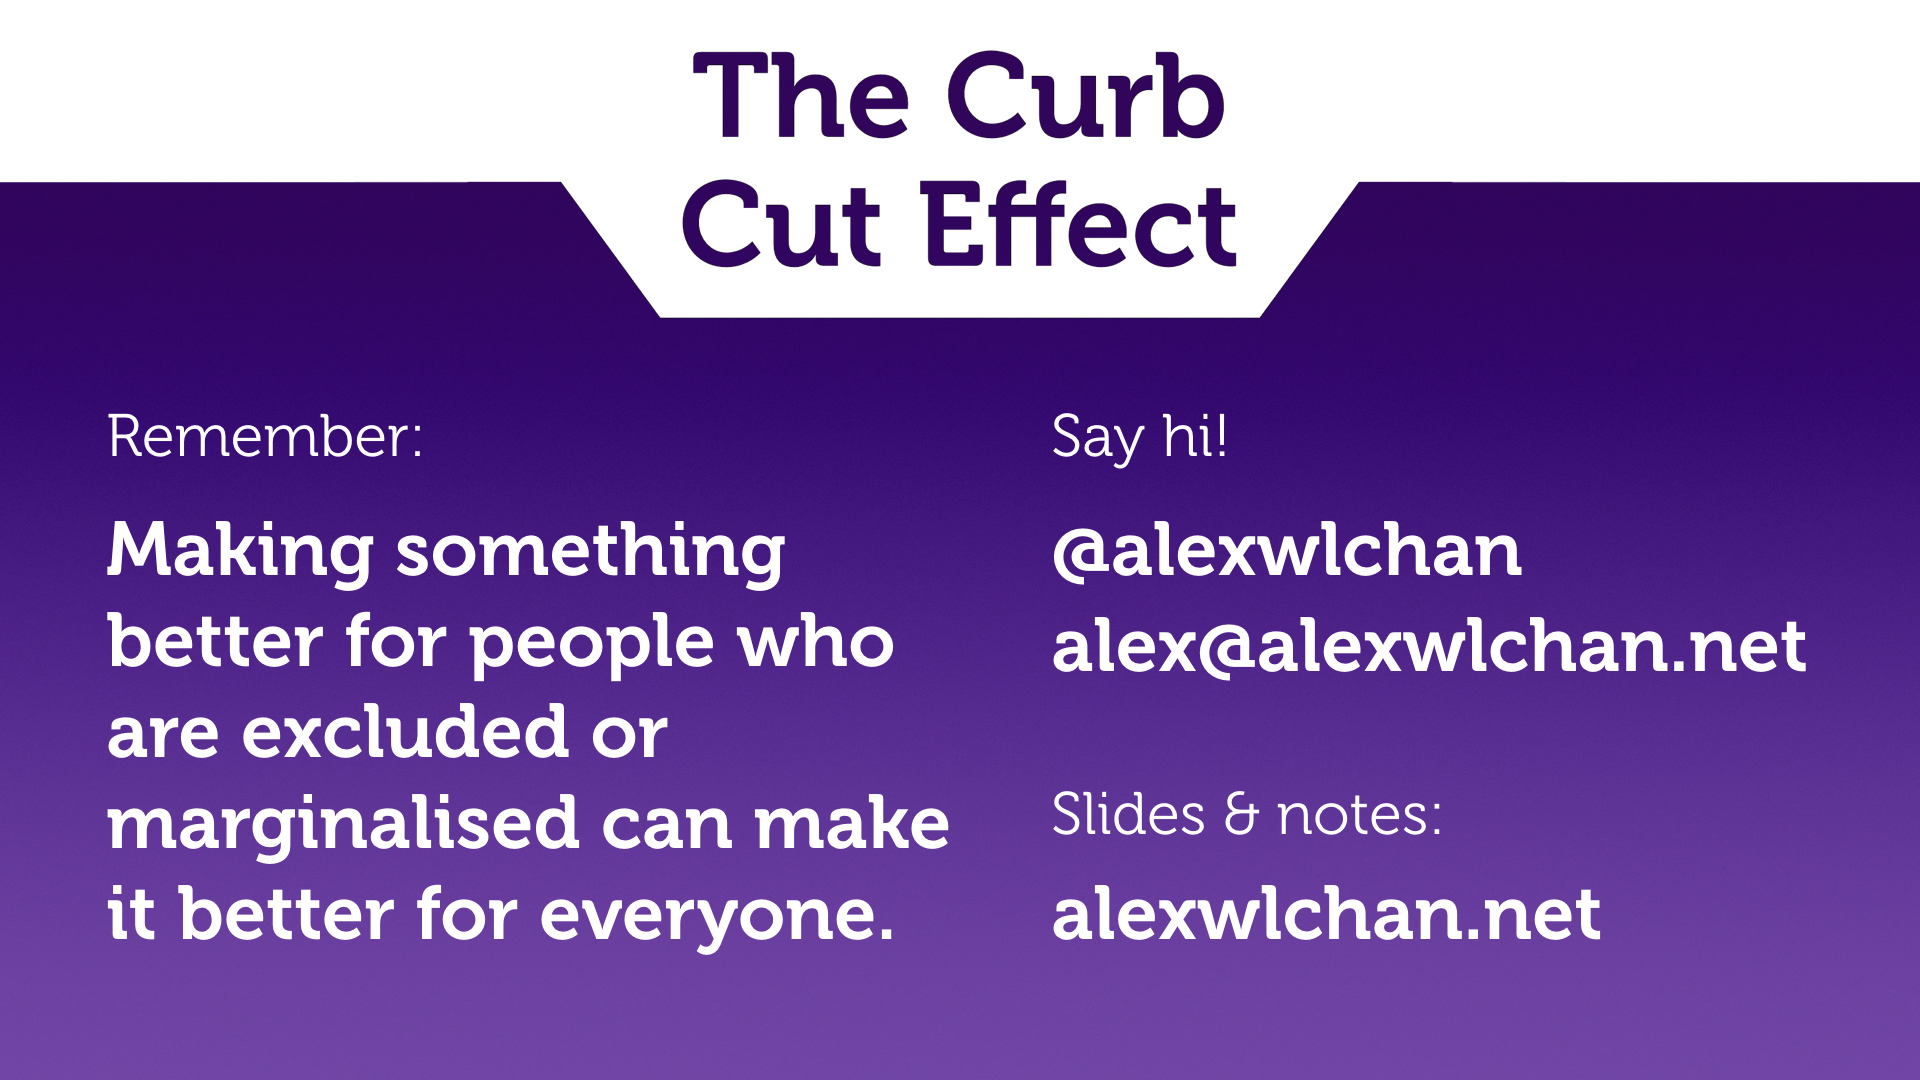 Closing slide, with a reminder of the curb cut effect and a link to the slides.